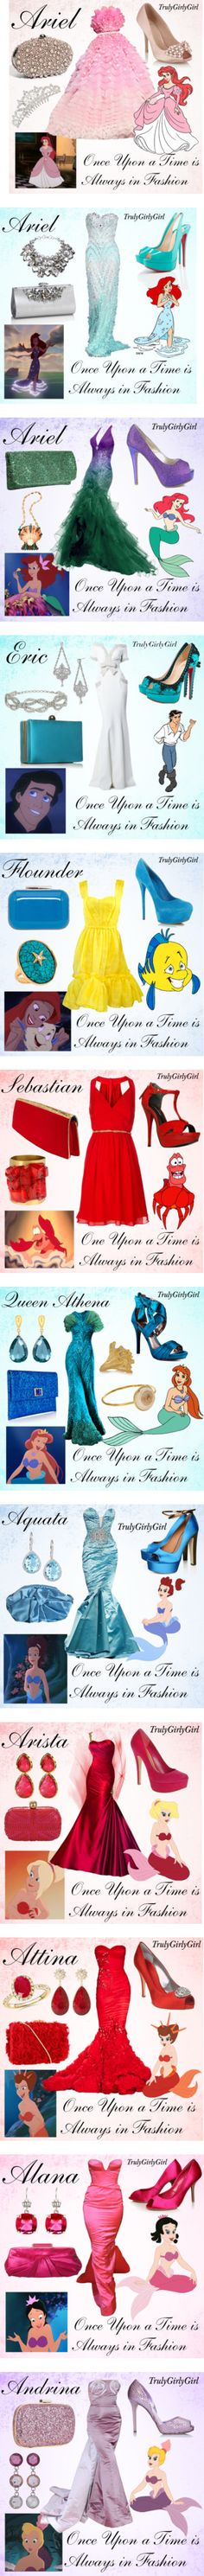 """Disney Style: The Little Mermaid"""